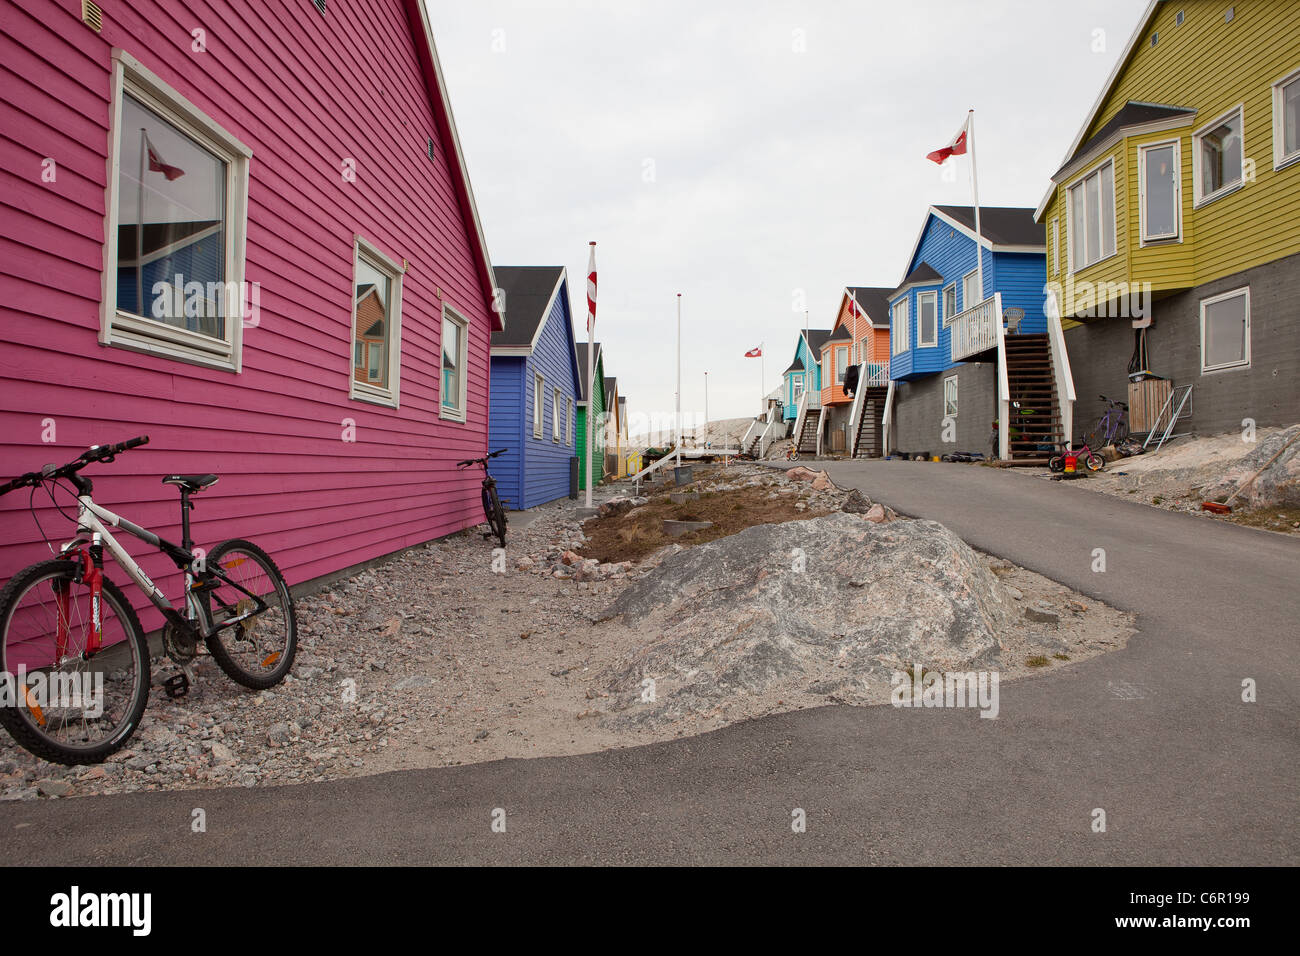 Colorful houses in Ilulissat on the west coast of Greenland - Stock Image